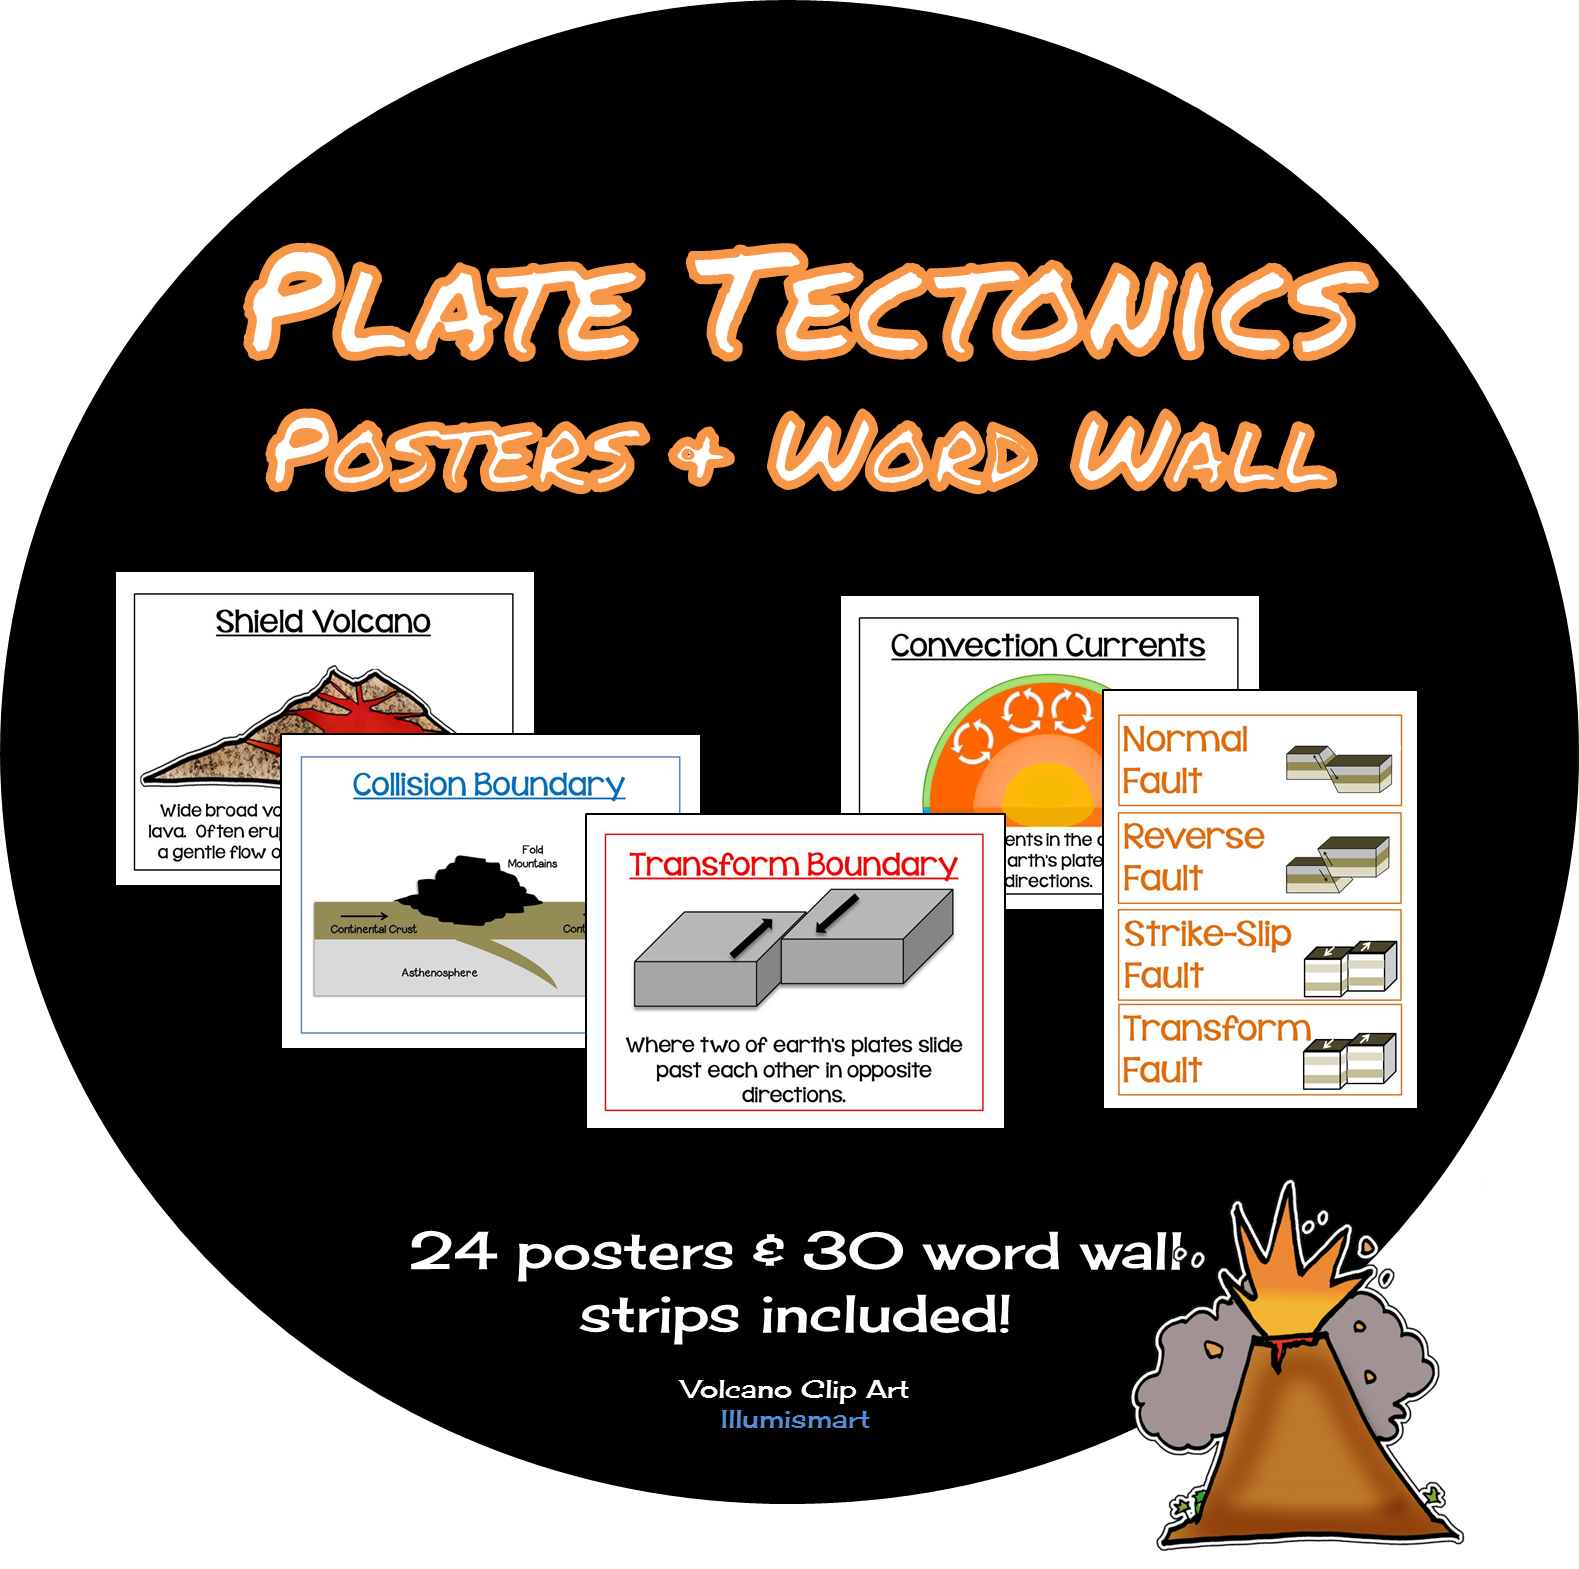 Words clipart earthquake. Plate tectonics volcanoes boundaries